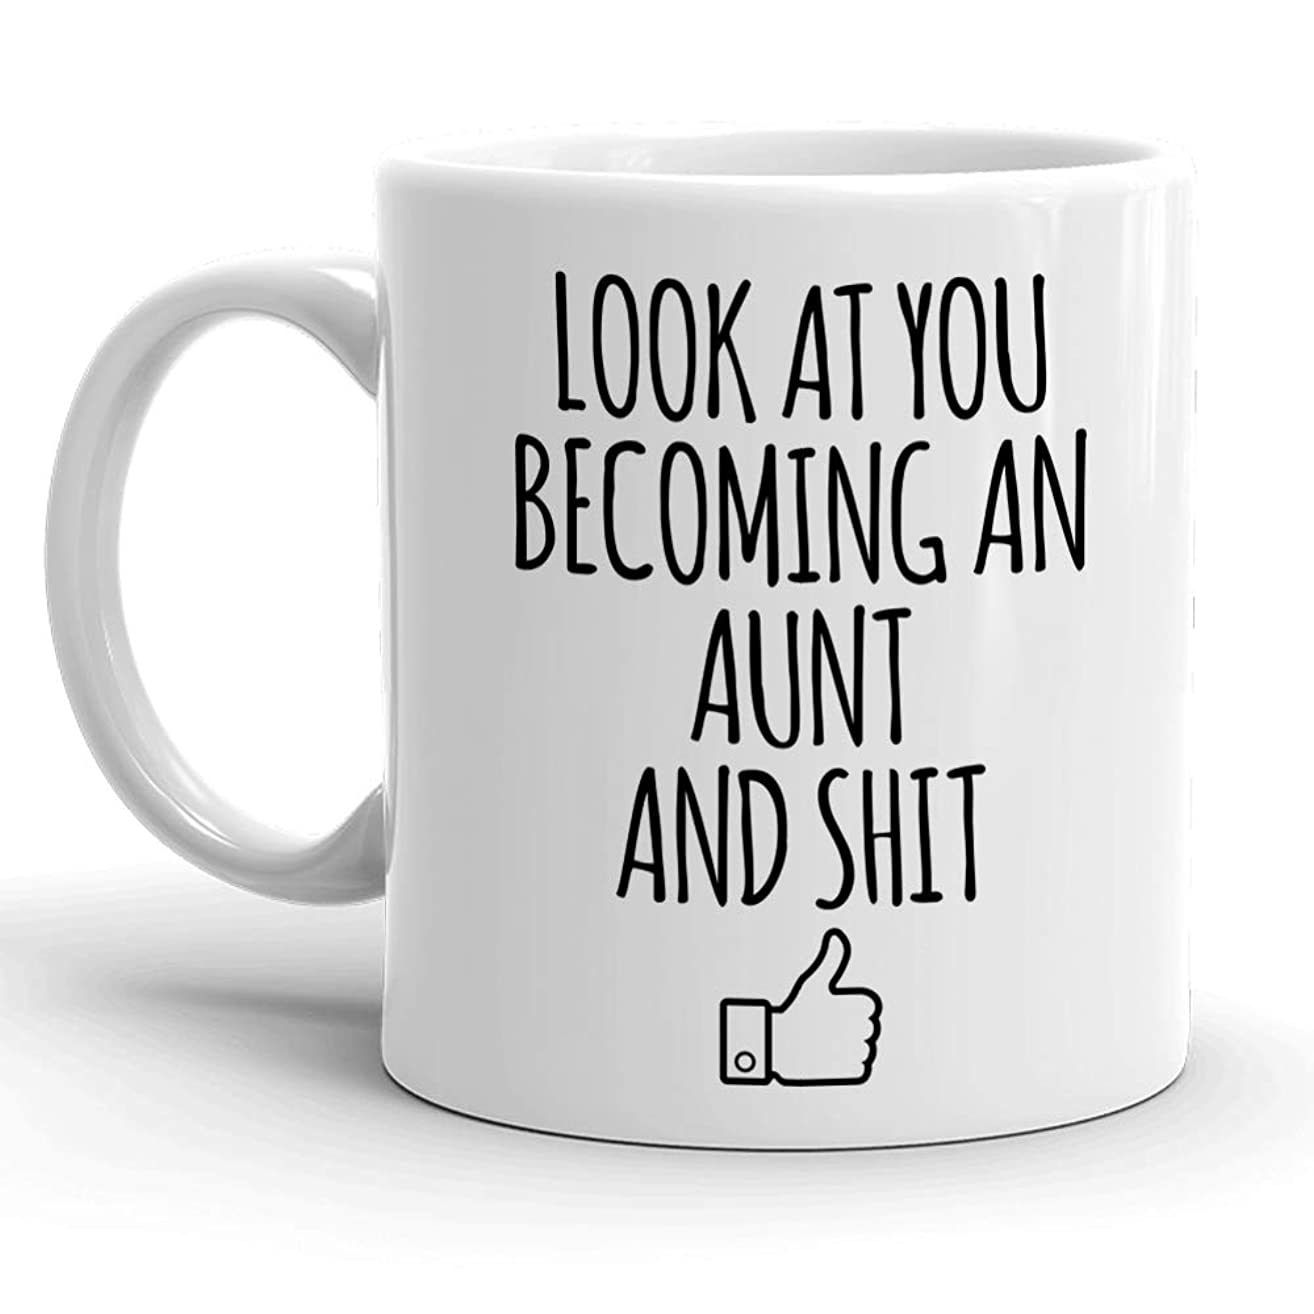 Look At You Becoming An Aunt And Shit Good Job White Ceramic 11 oz Coffee Mug, Unique Funny St Patrick's Day, Christmas, Xmas, Birthday Gifts, Hot Rude Sarcastic Mugs Memes Tea Cup